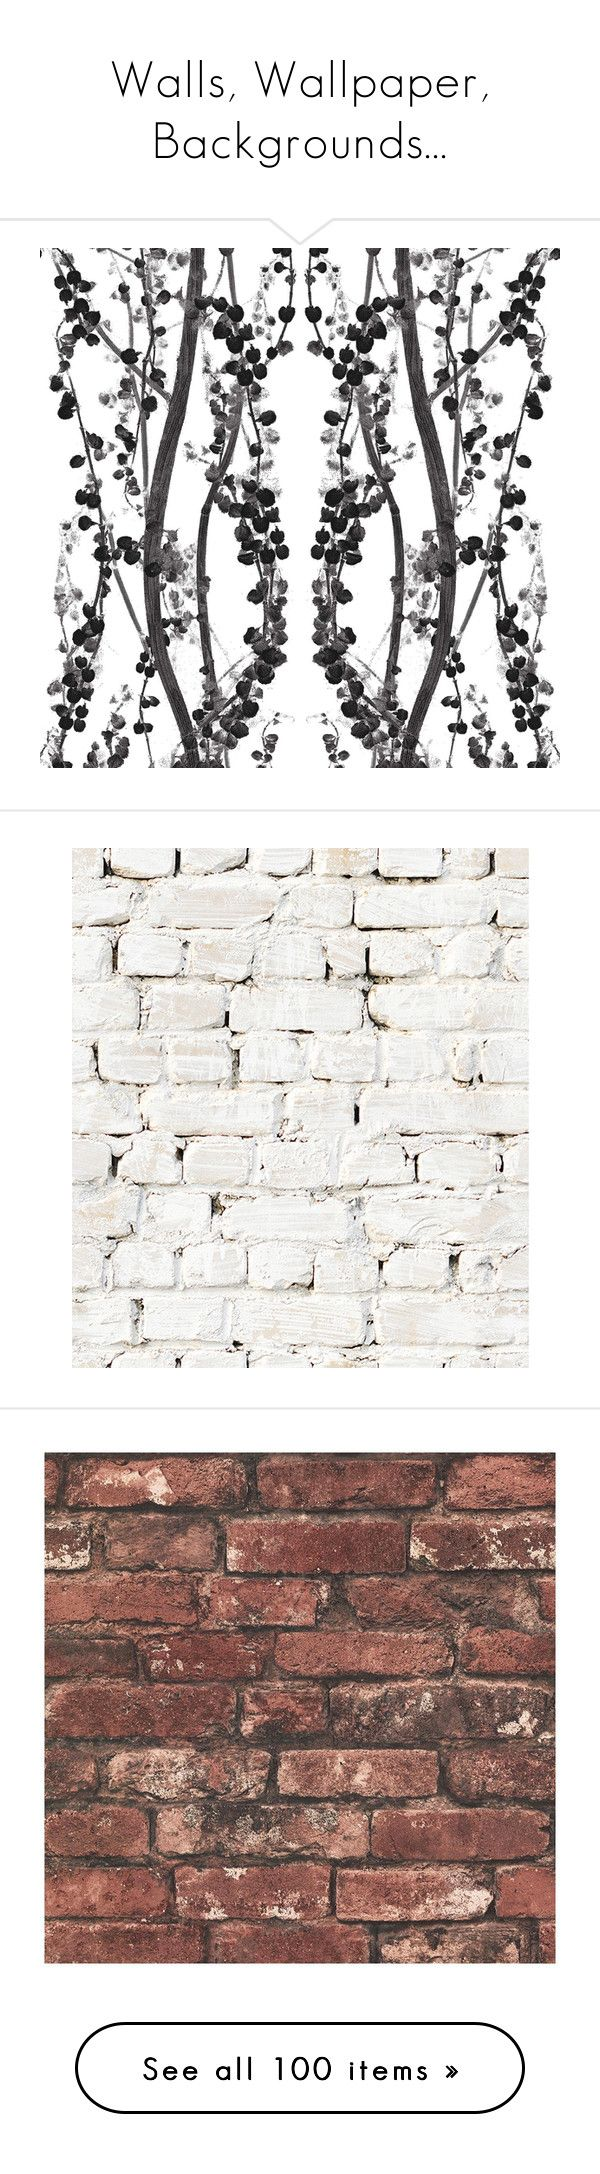 """""""Walls, Wallpaper, Backgrounds..."""" by caymansunshine ❤ liked on Polyvore featuring home, home decor, wallpaper, wallpaper samples, black white home decor, peelable wallpaper, branches home decor, painted wallpaper, removable wallpaper and backgrounds"""